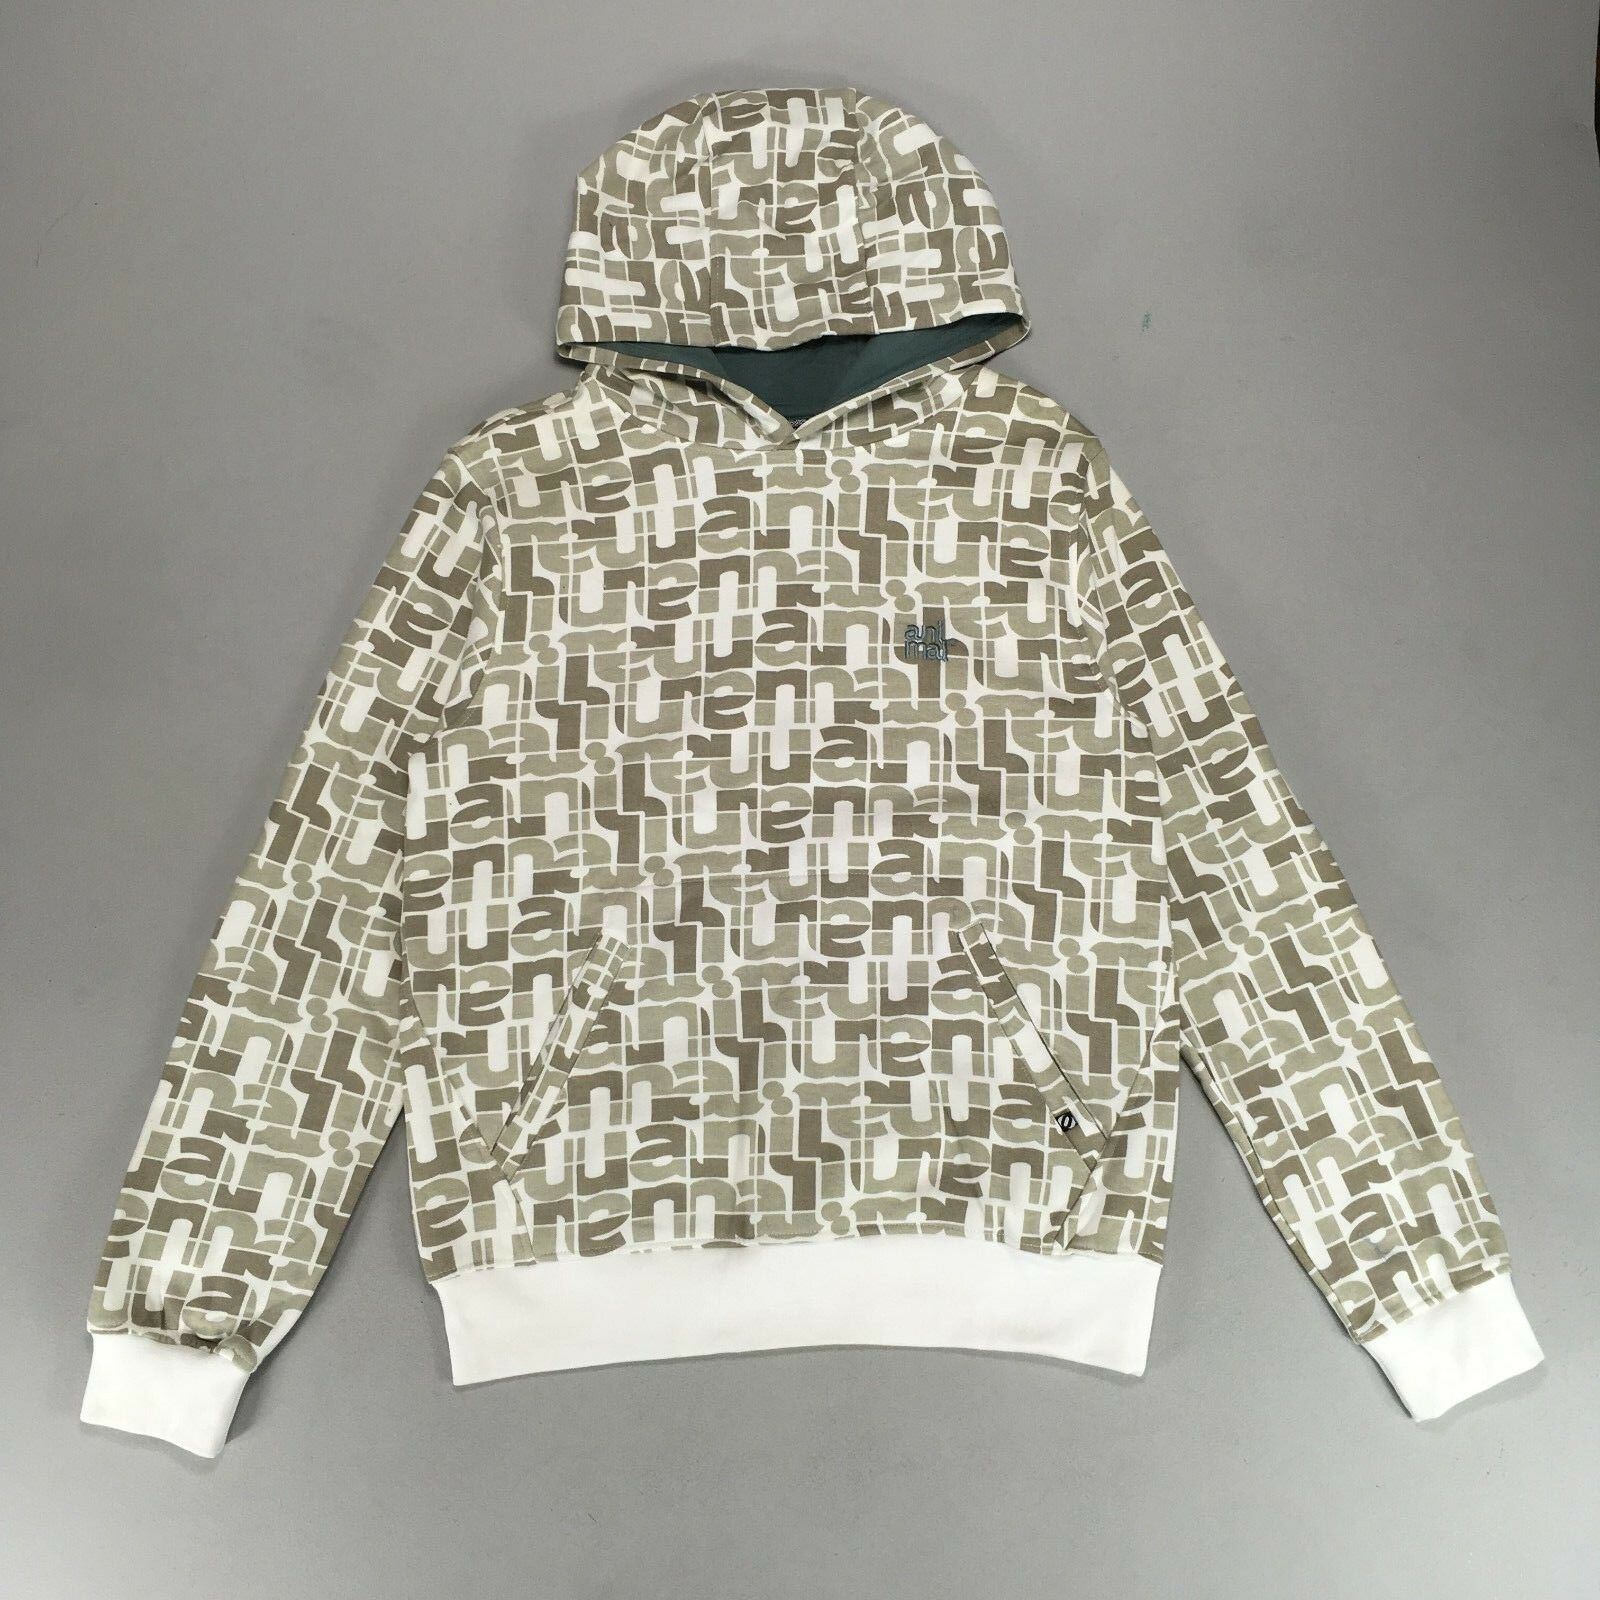 Details about Animal All Over Print Hoodie White Size S